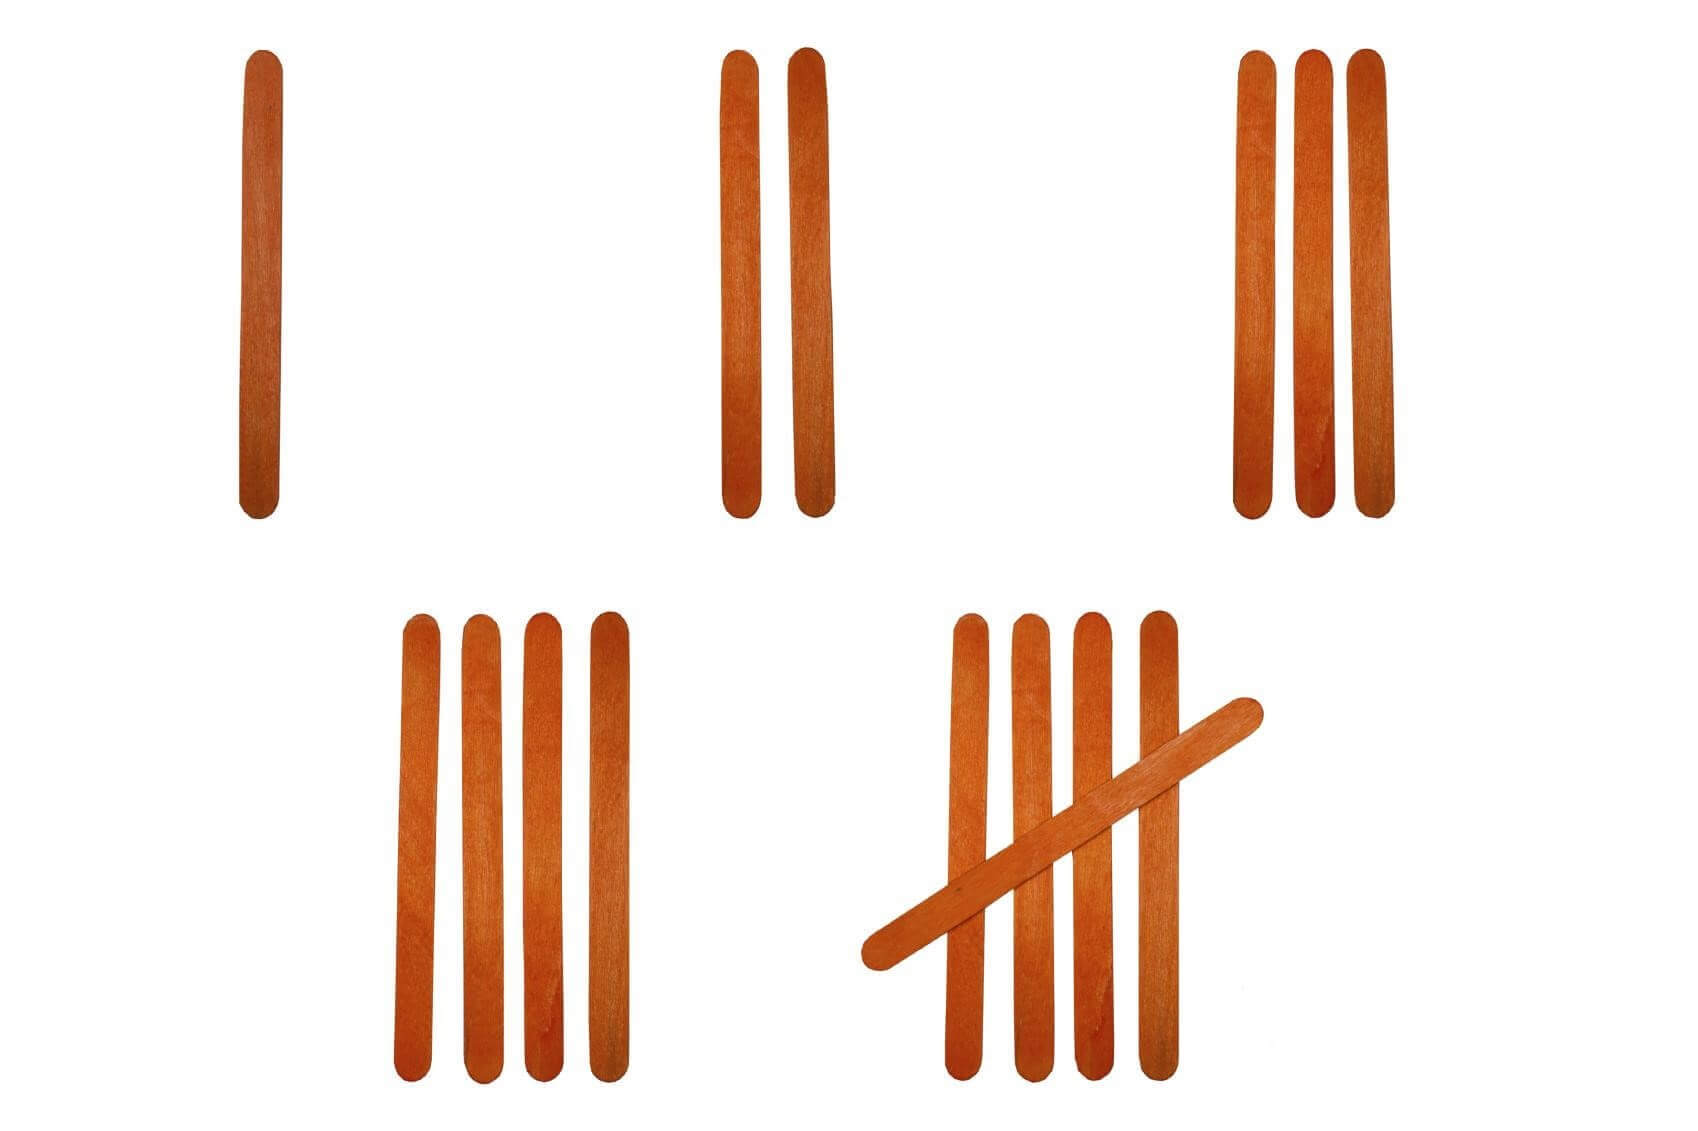 Craft Sticks Math Activity